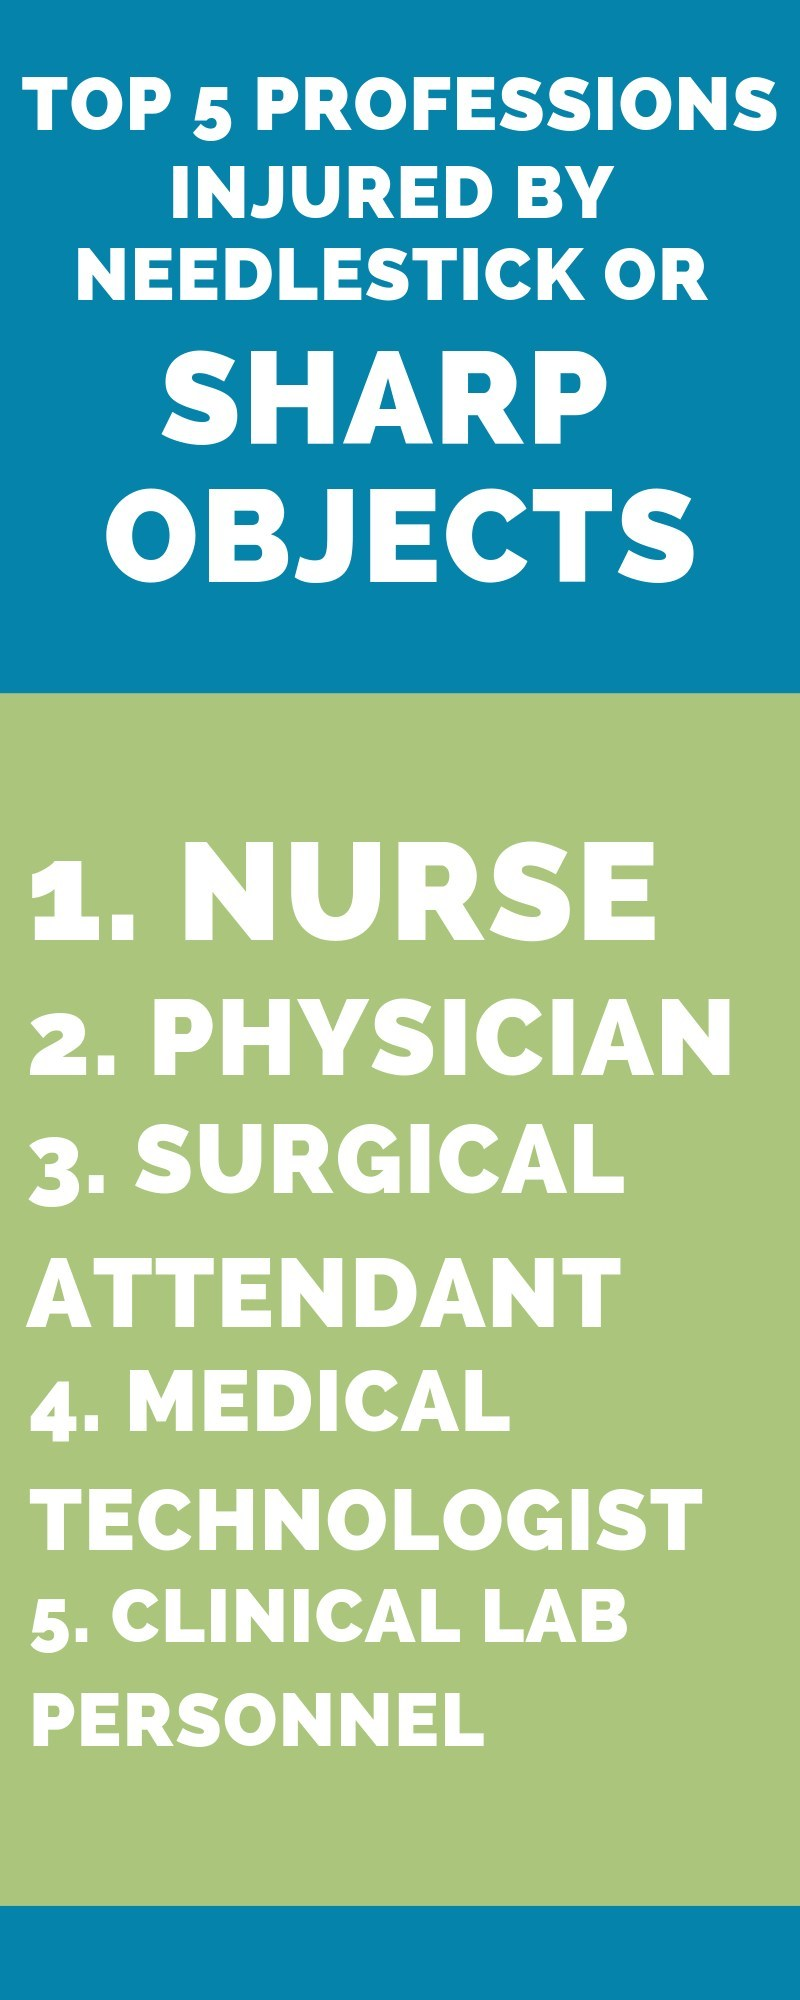 Top 5 Injured Professions Infographic